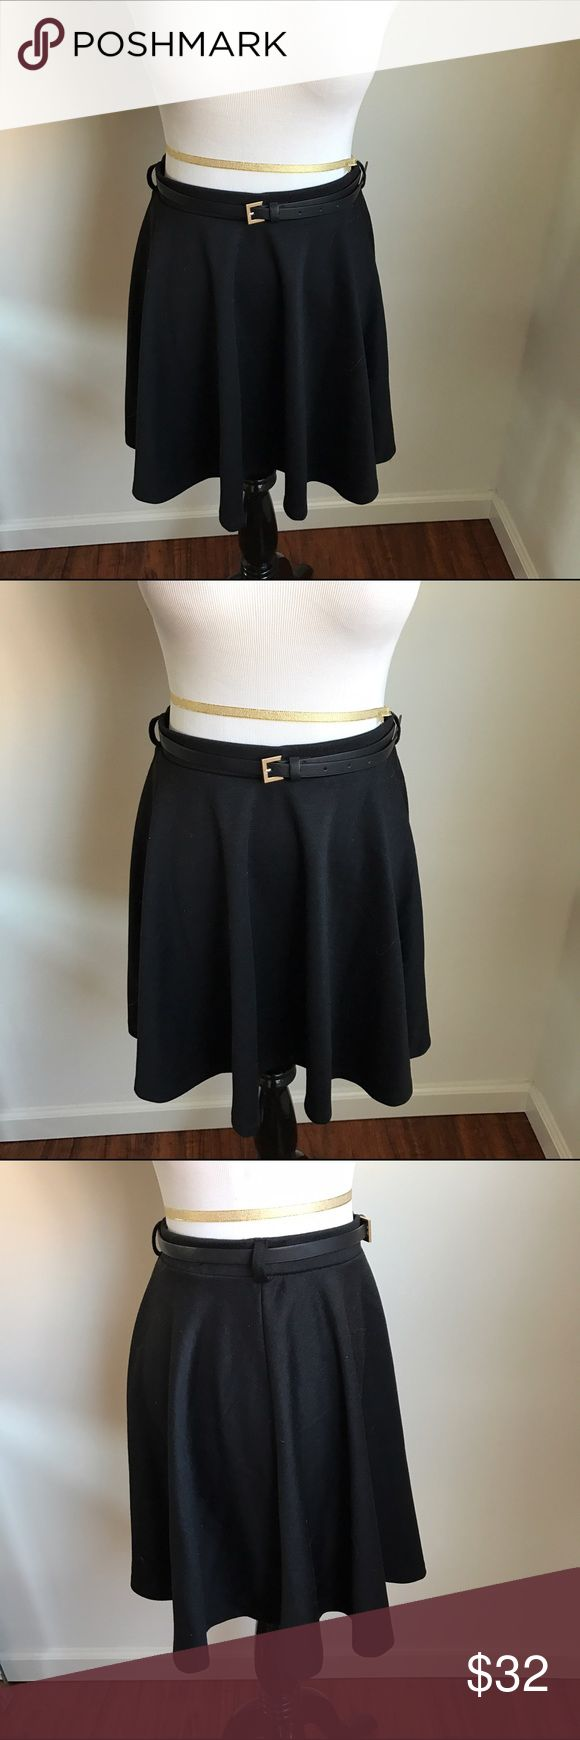 NWT ASOS Black Skater Skirt with Belt NWT ASOS Black Skater Skirt with Belt.  Knit fabric.  By brand New Look.  Purchased from ASOS 🚫No Trades 🚫No Modeling ASOS Skirts Circle & Skater